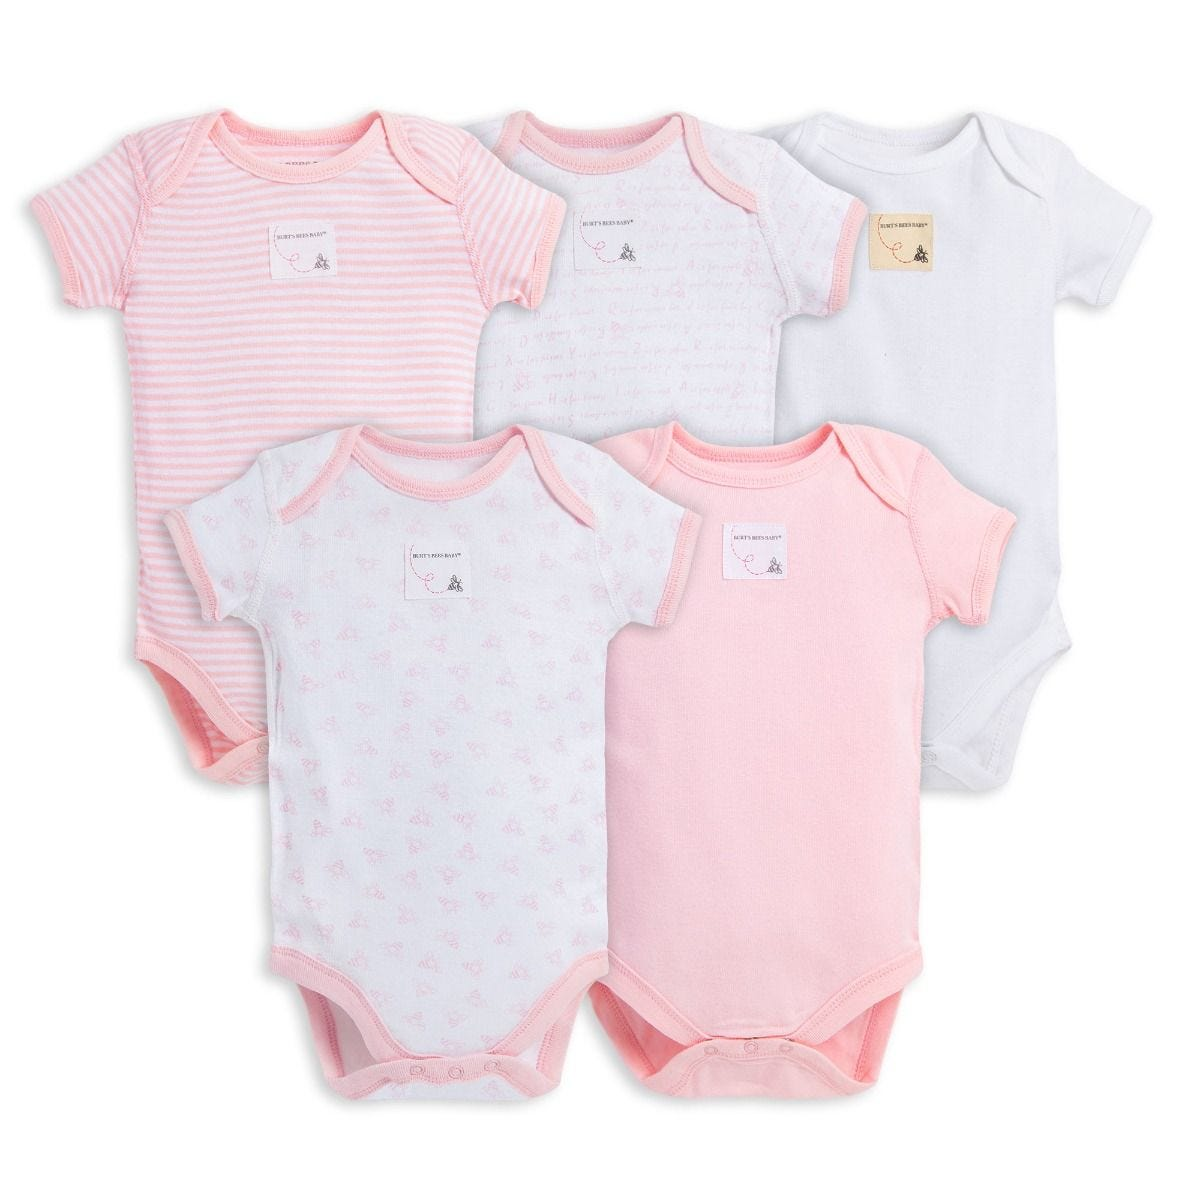 4b91ec974 Bee Essentials Organic Short Sleeve Baby Girls Bodysuits Set of 5 | Burt's  Bees Baby®